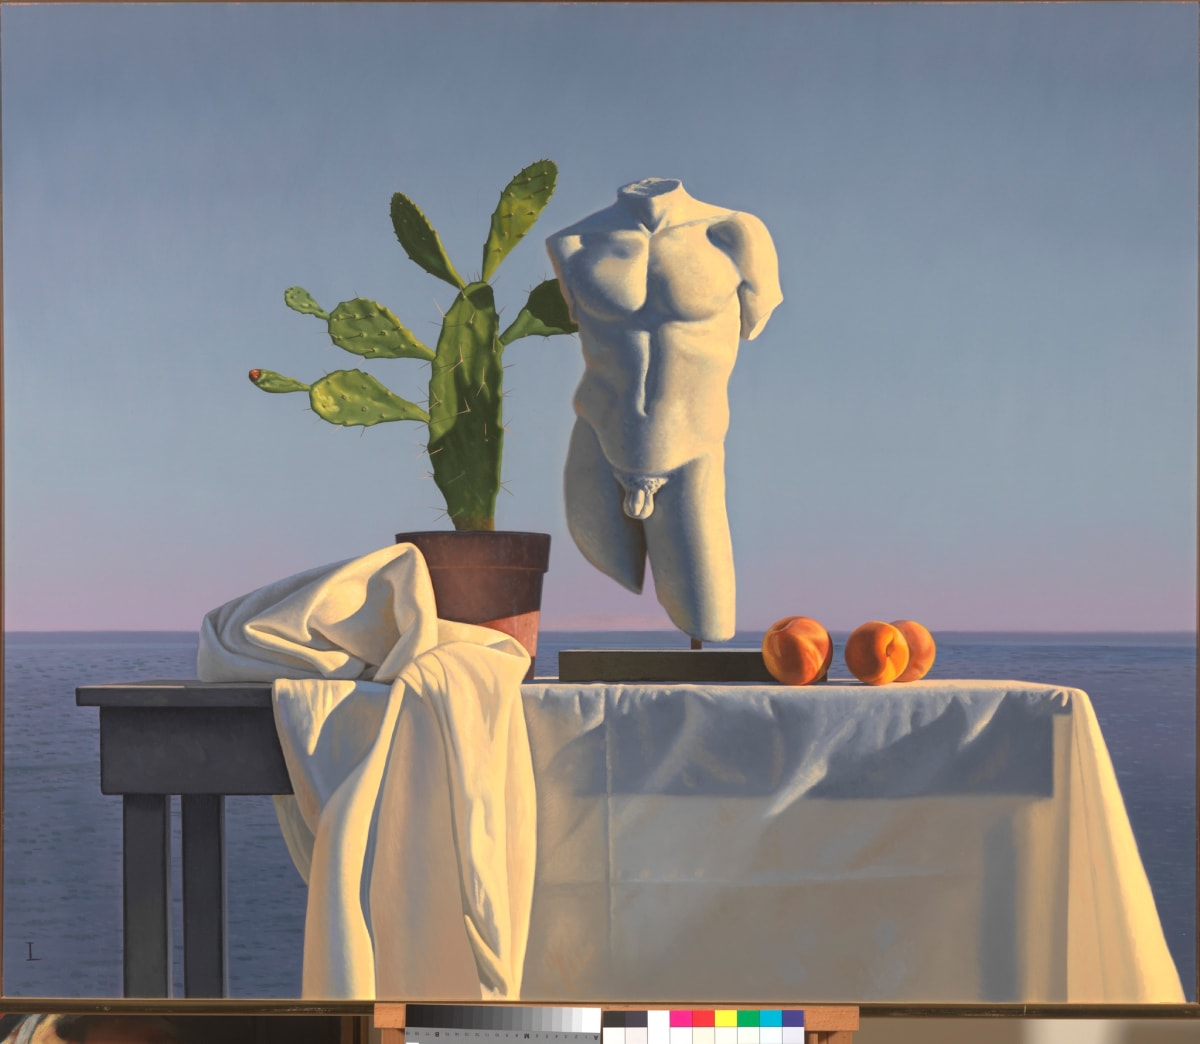 David Ligare STILL LIFE WITH TORSO AND CACTUS oil on canvas 102 x 122 cm